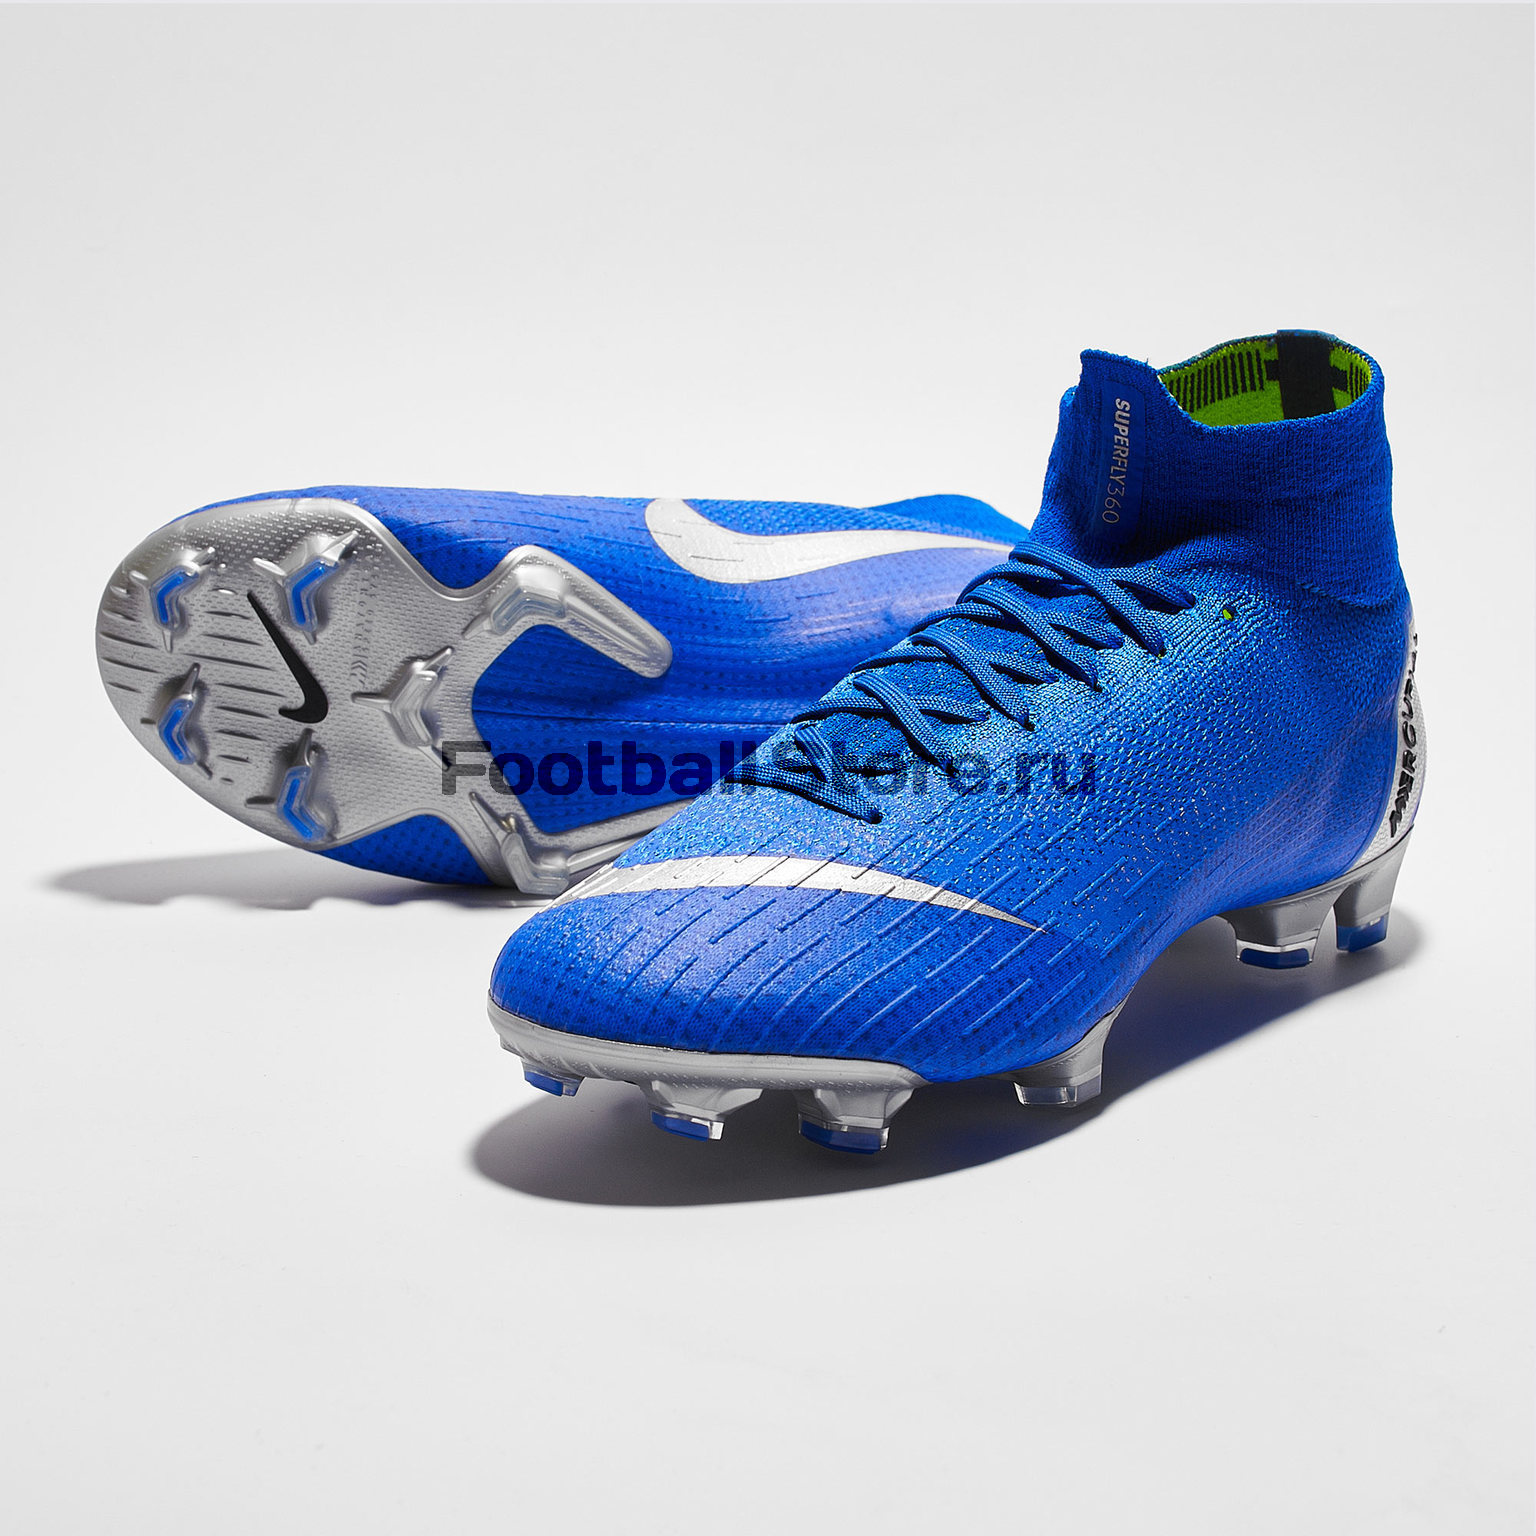 Бутсы Nike Superfly 6 Elite FG AH7365-400 бутсы nike mercurial victory iii fg 509128 800